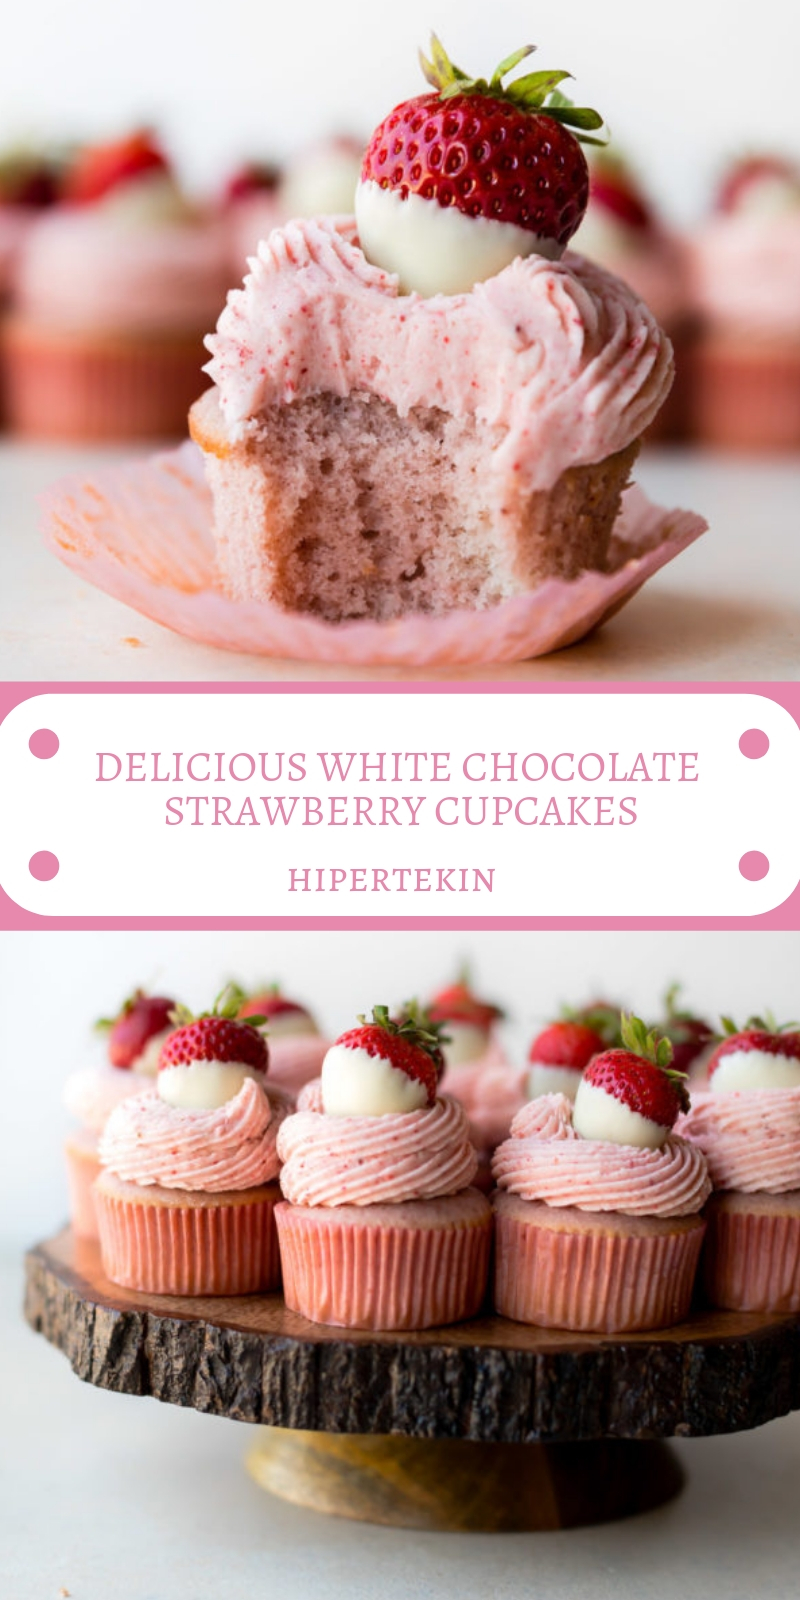 DELICIOUS WHITE CHOCOLATE STRAWBERRY CUPCAKES